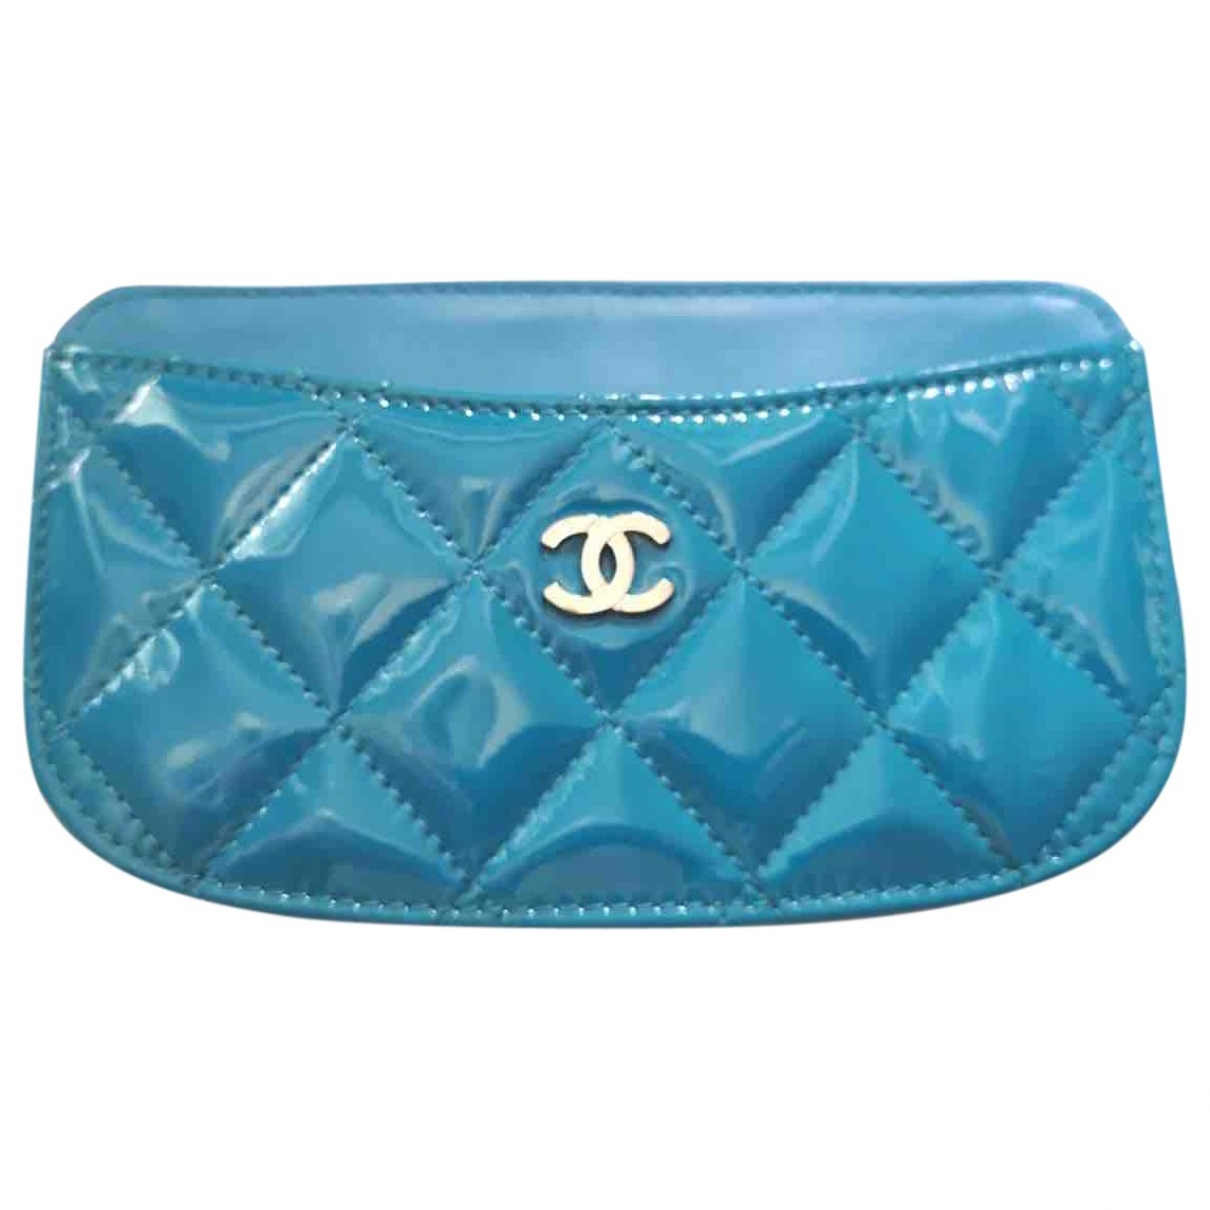 Chanel Timeless/Classique Blue Patent leather Purses, wallet & cases for Women \N